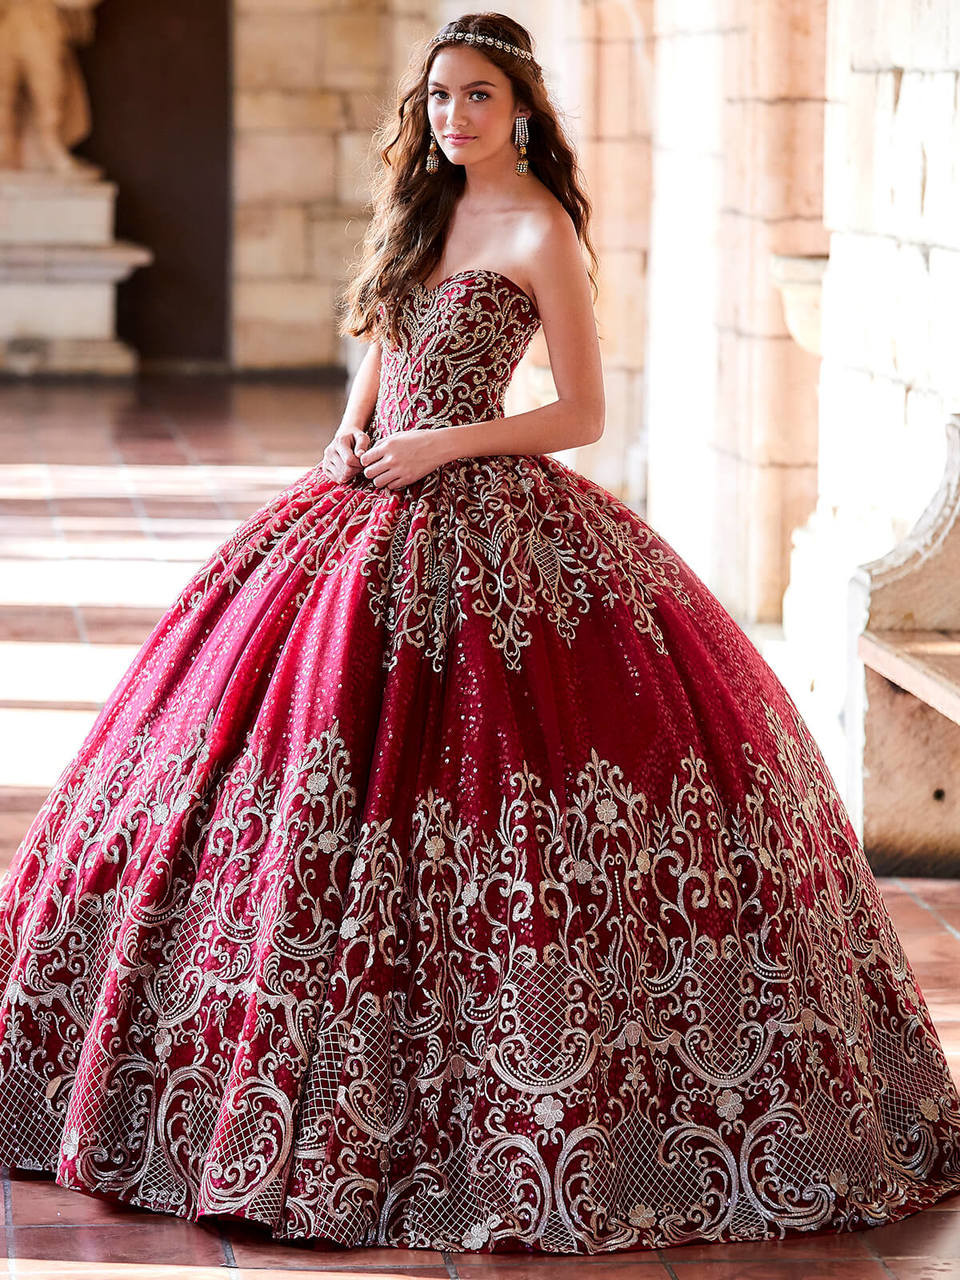 79aedcabf64 sweetheart embroidered lace ball princesa by ariana vara pr11945